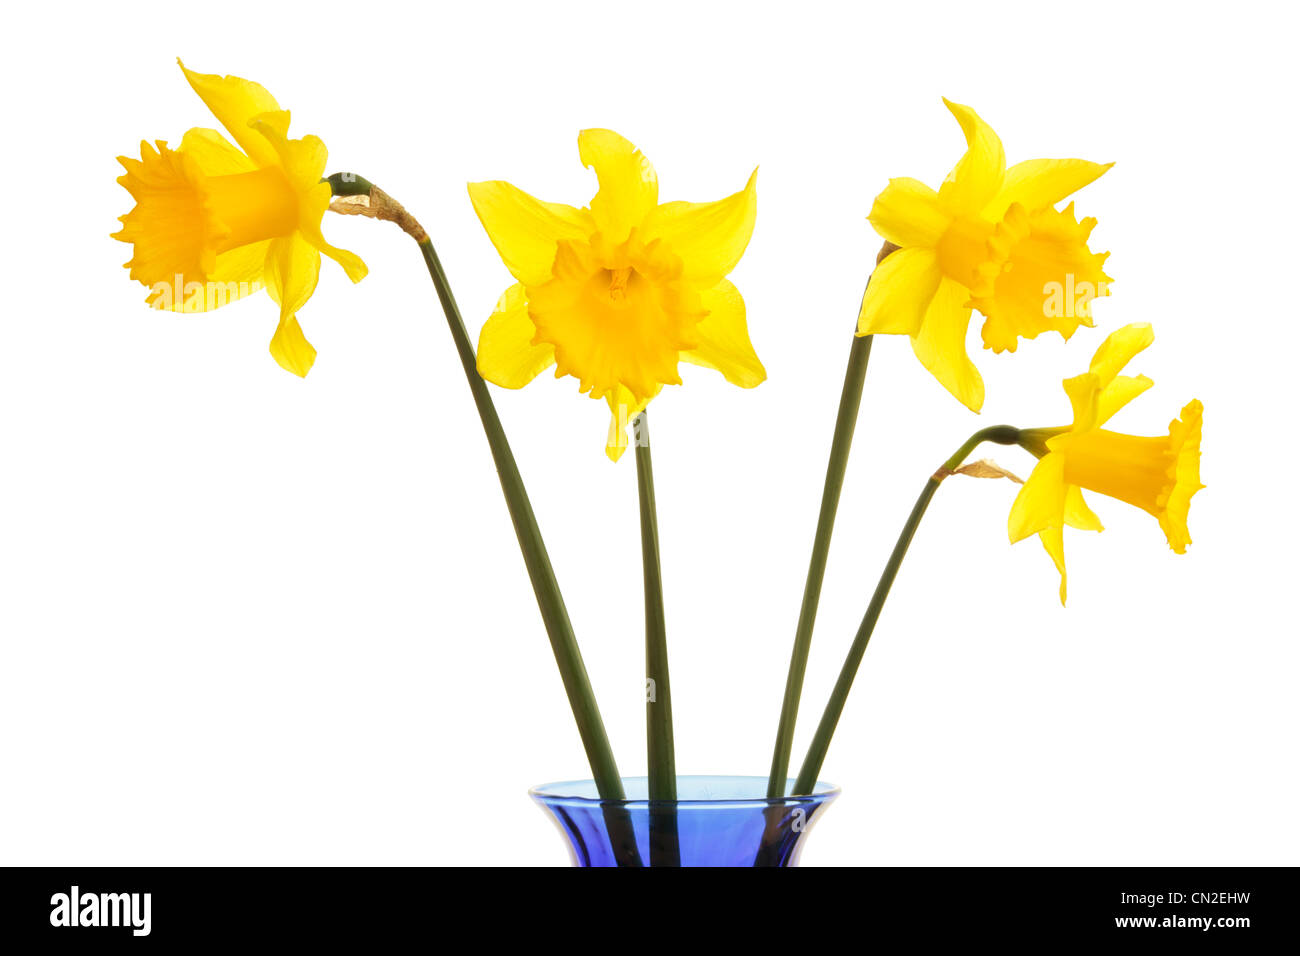 Spring flowers daffodils vase stock photos spring flowers spring daffodils in a blue vase against white background stock image mightylinksfo